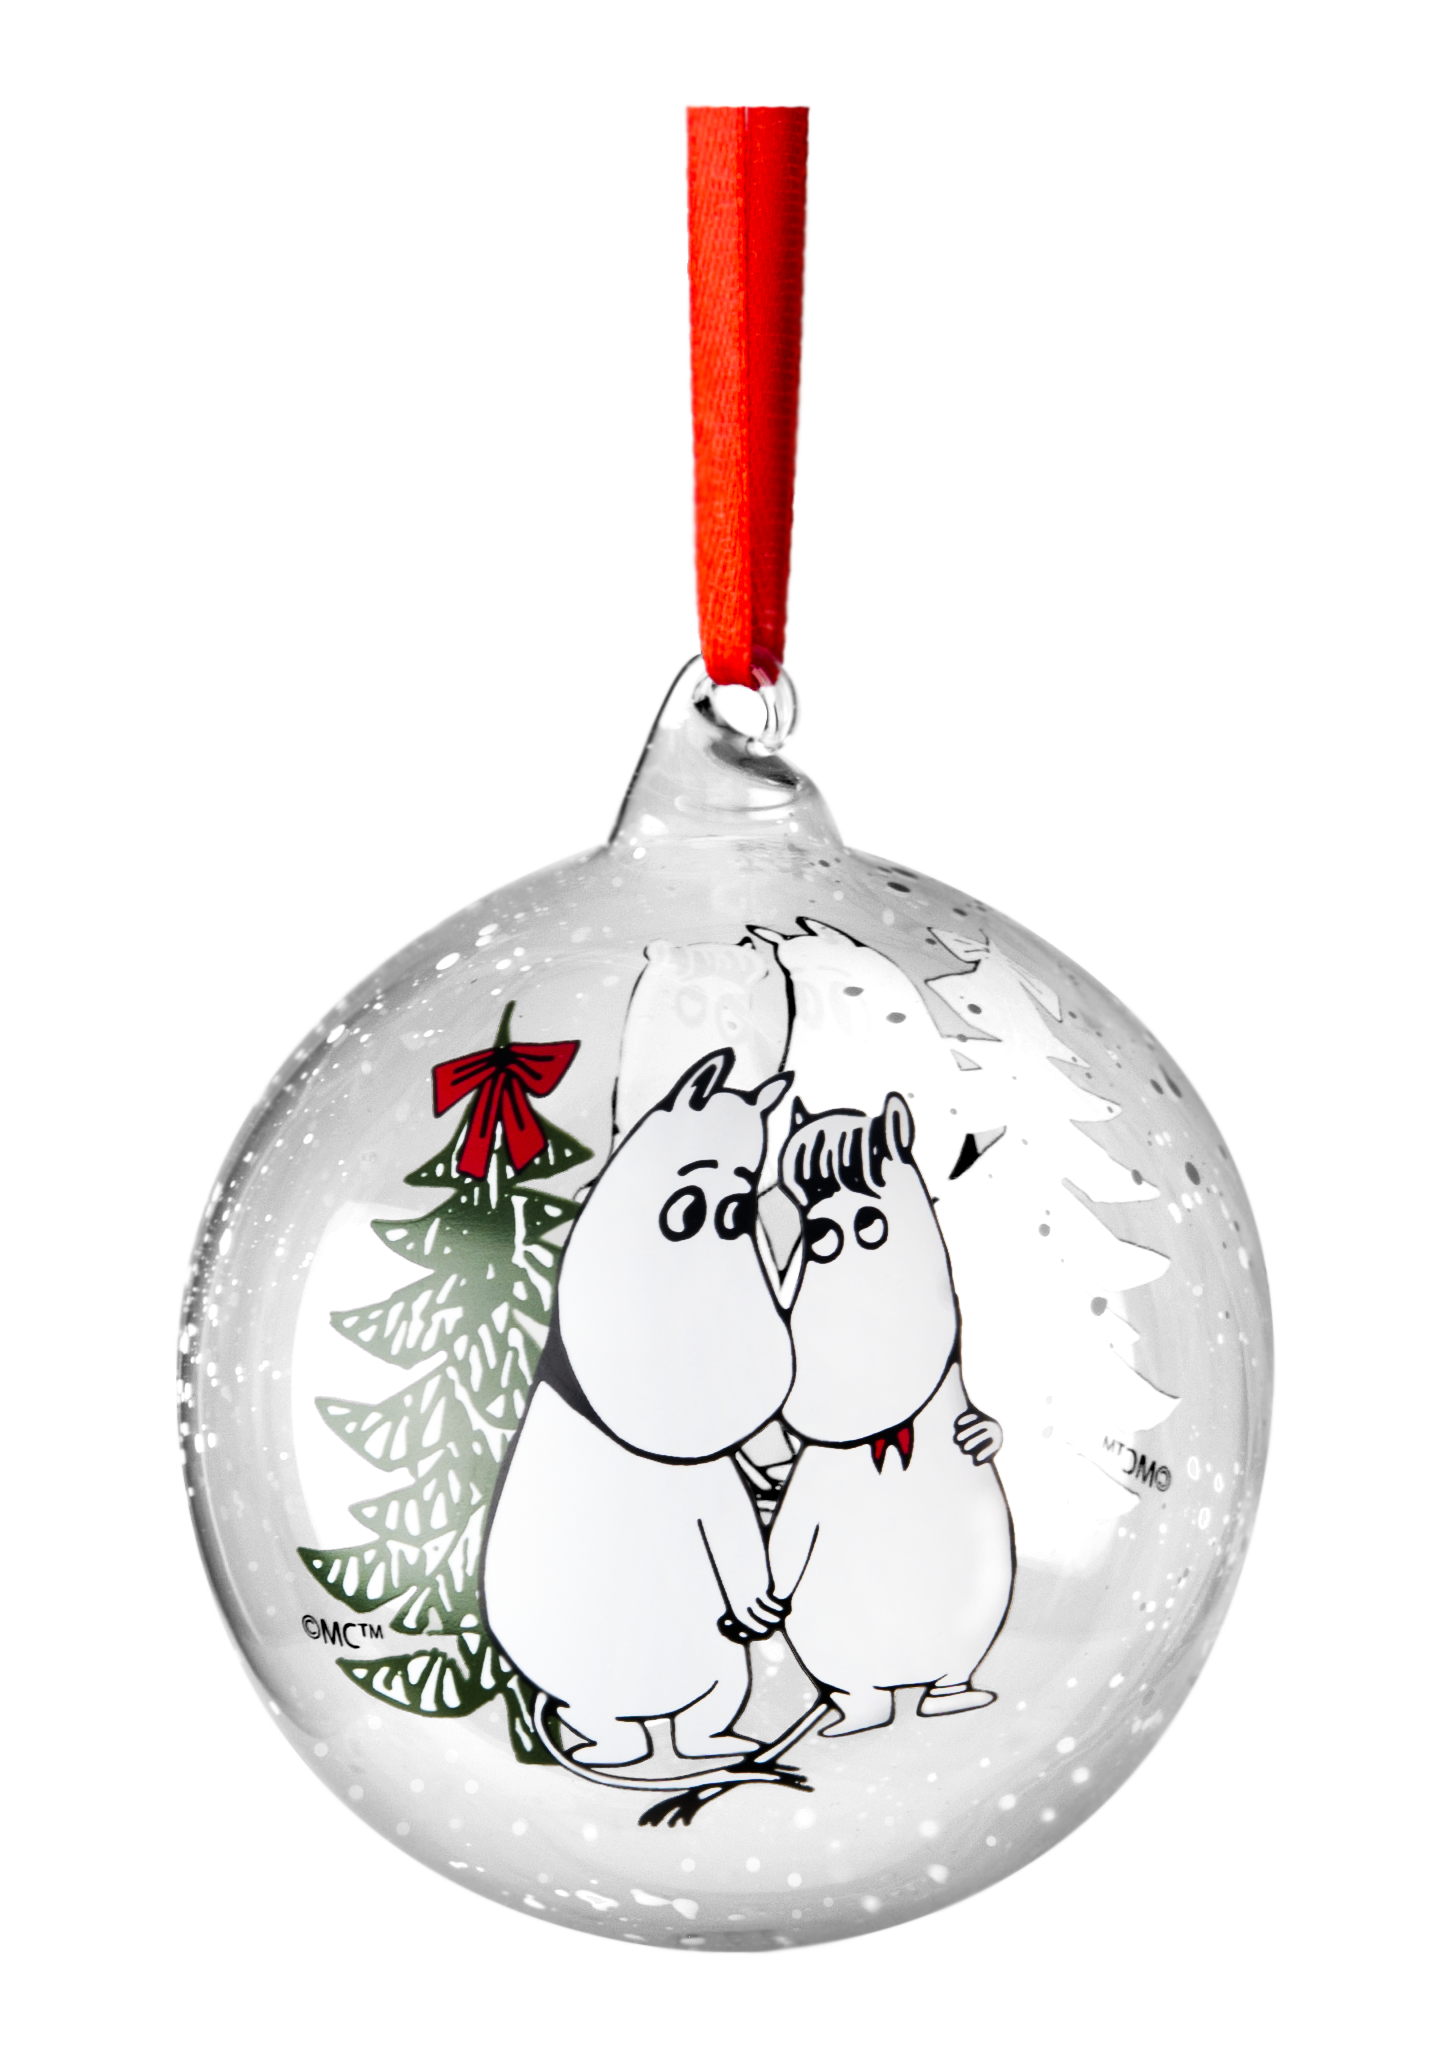 Muurla Moomin Winter Magic decoration ball 9cm